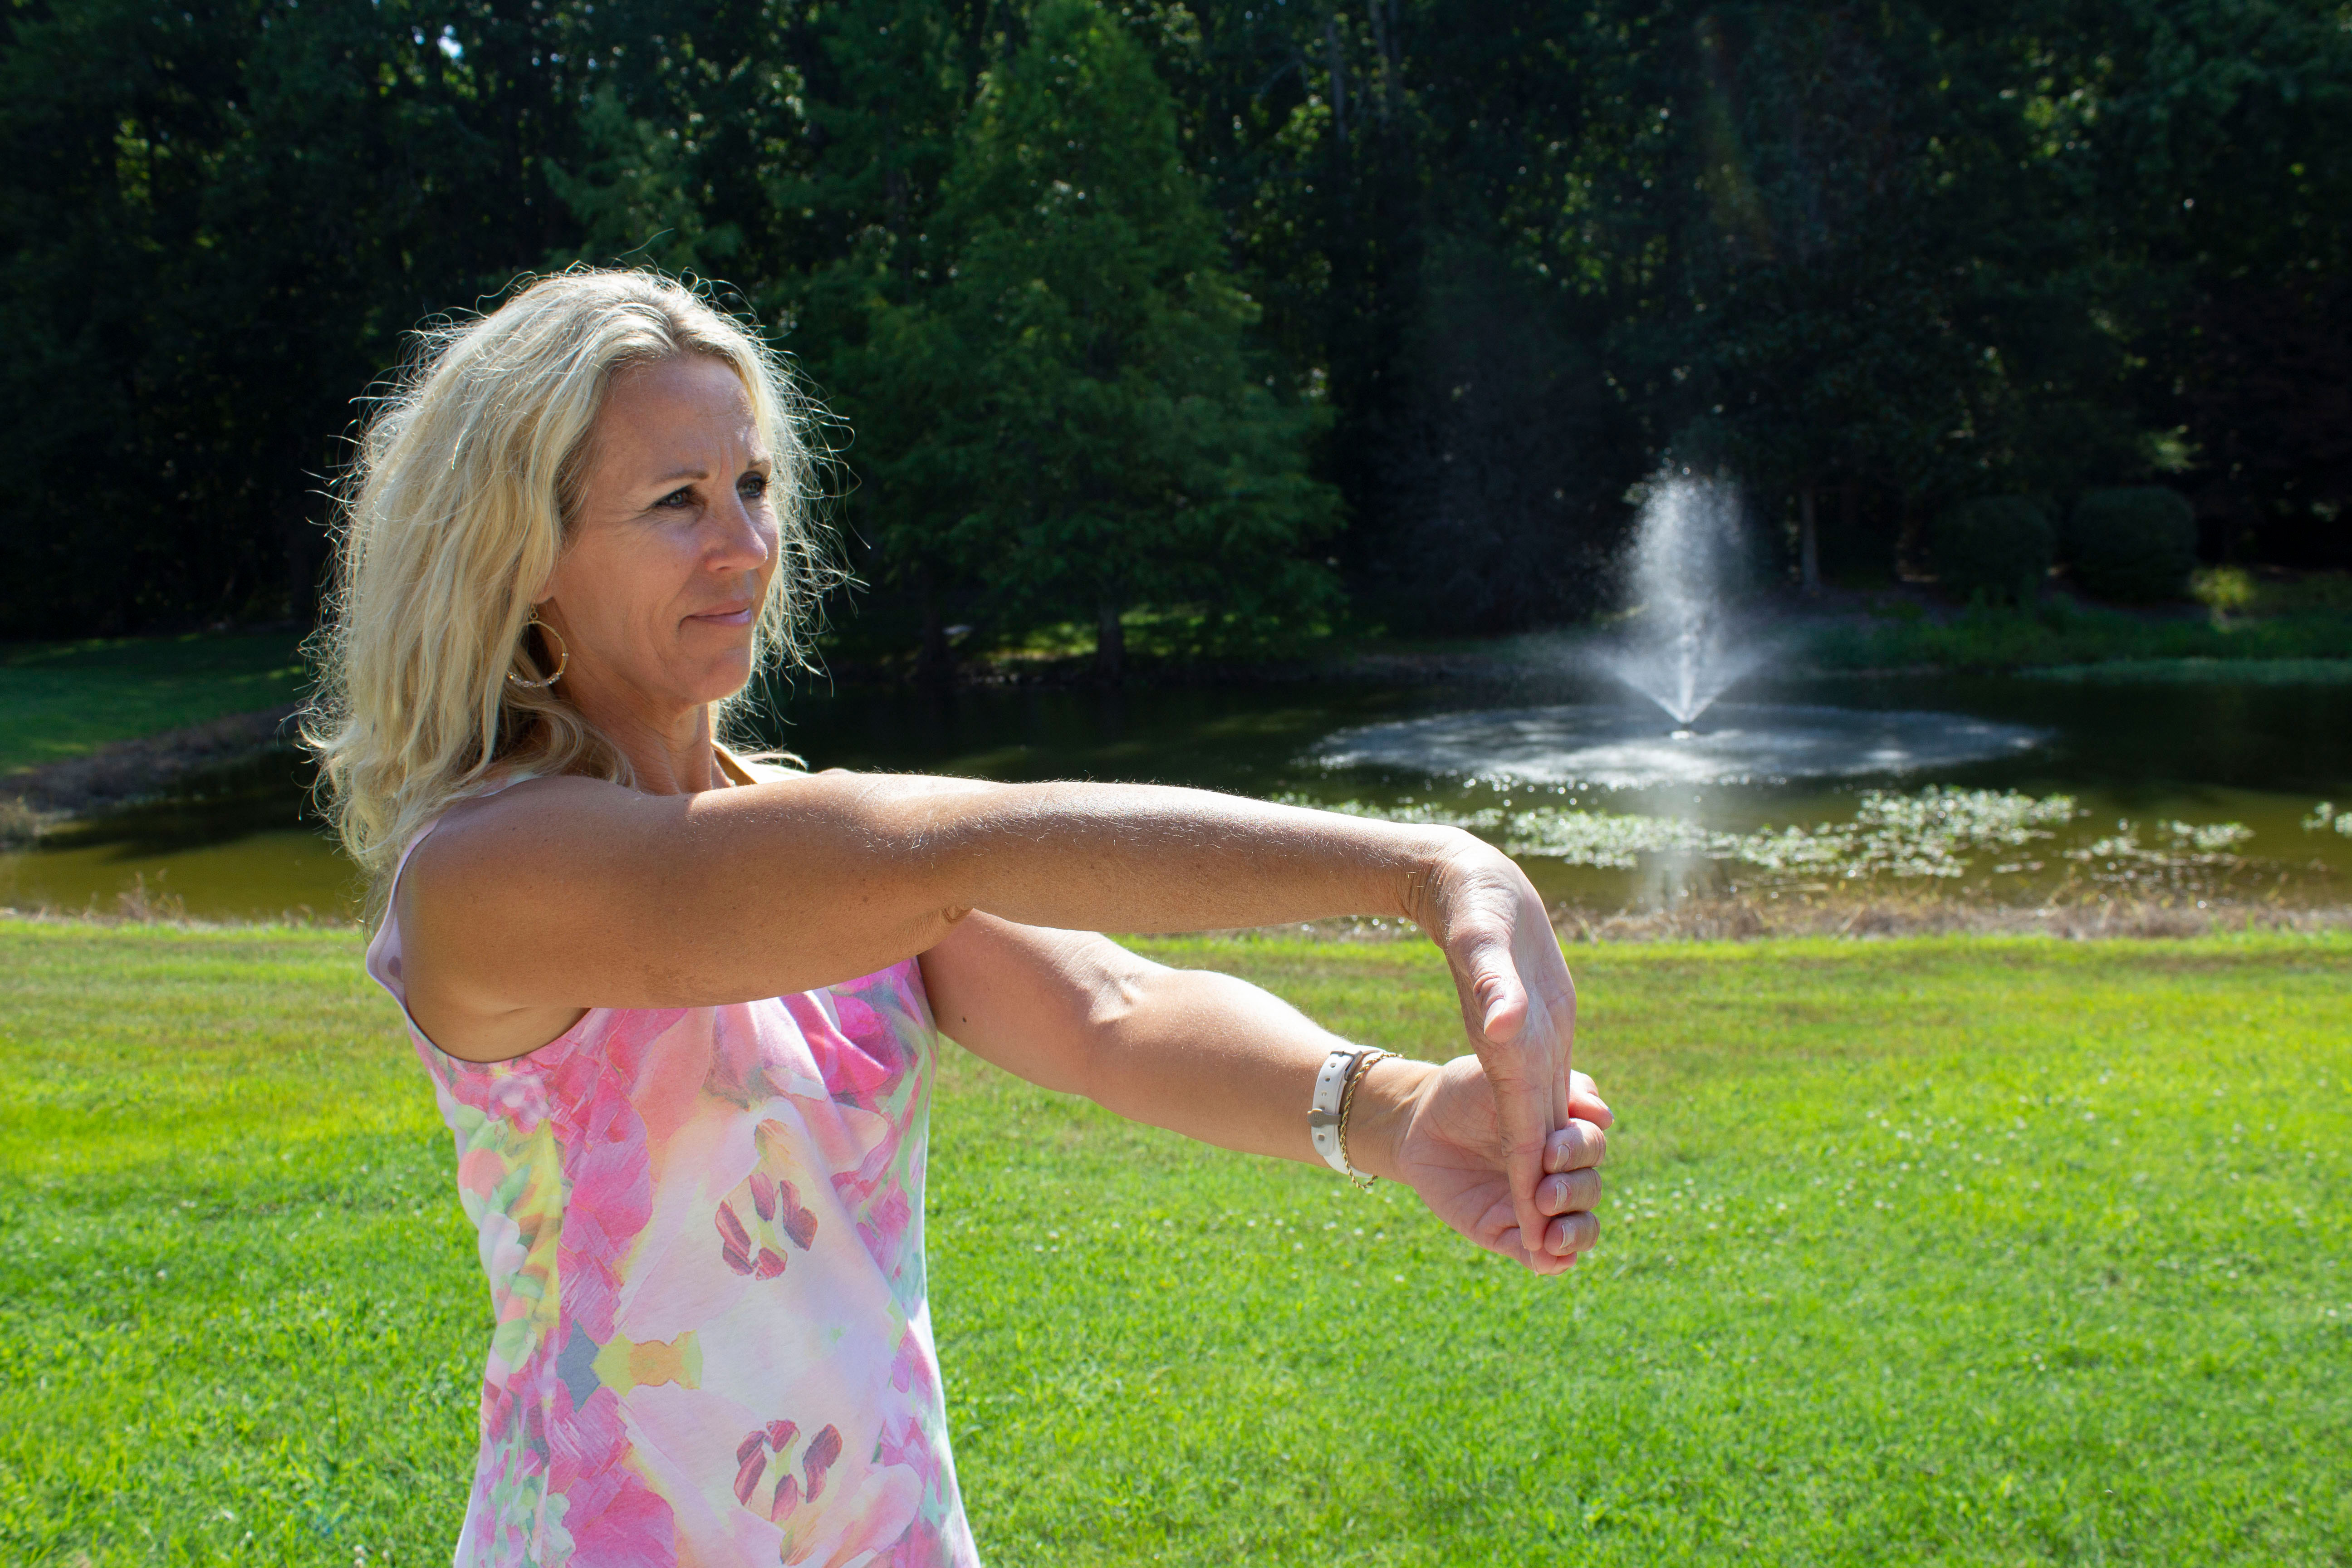 woman stretching arm and wrist